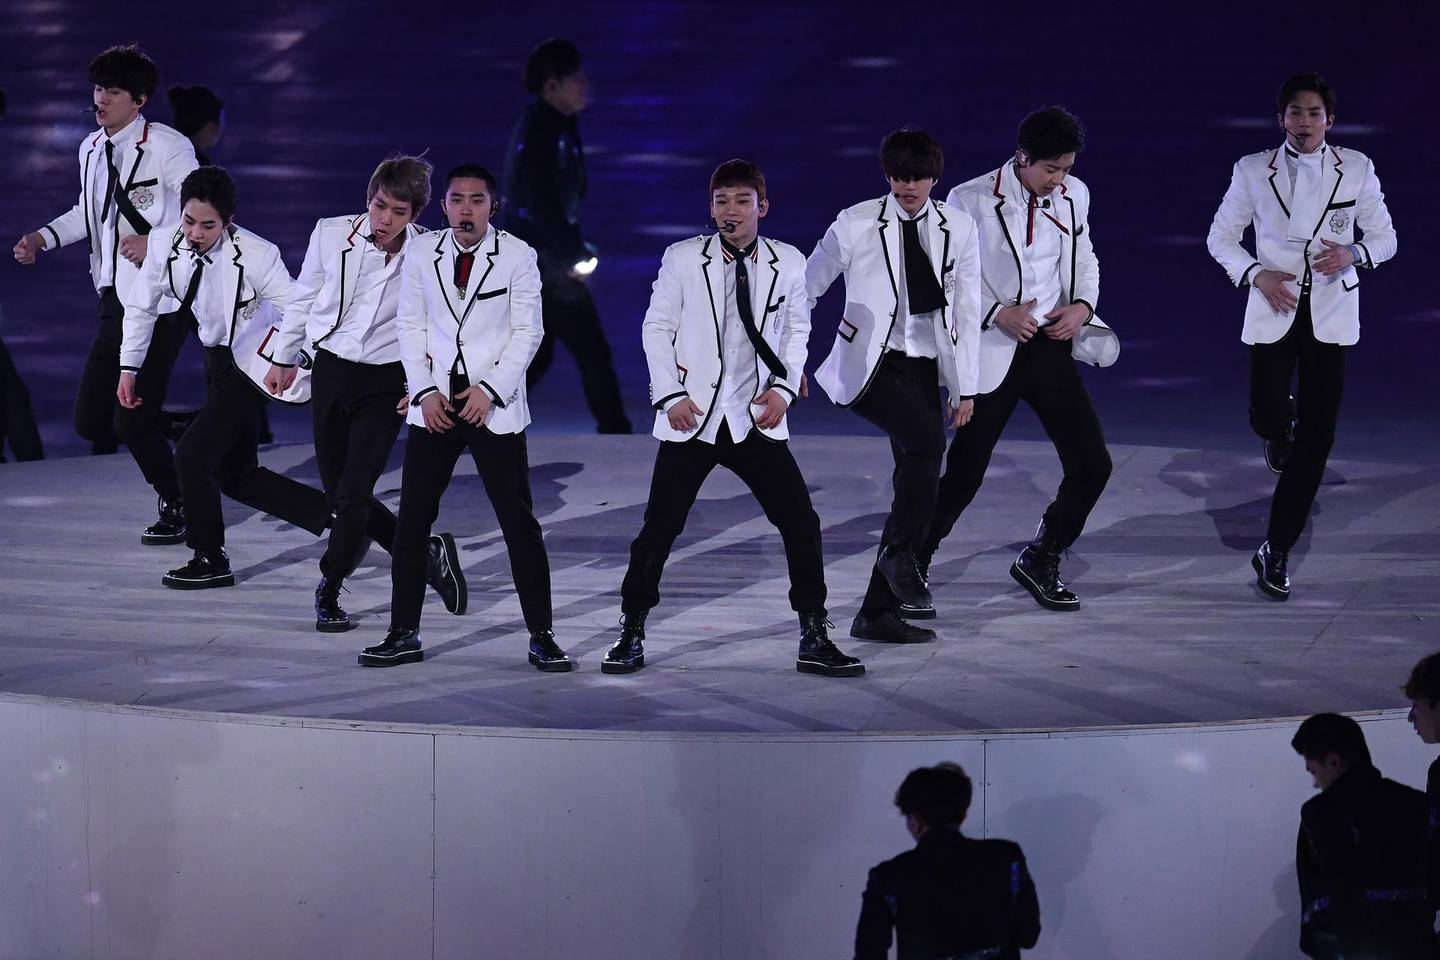 PYEONGCHANG-GUN, SOUTH KOREA - FEBRUARY 25:  Band EXO perform during the Closing Ceremony of the PyeongChang 2018 Winter Olympic Games at PyeongChang Olympic Stadium on February 25, 2018 in Pyeongchang-gun, South Korea.  (Photo by David Ramos/Getty Images)